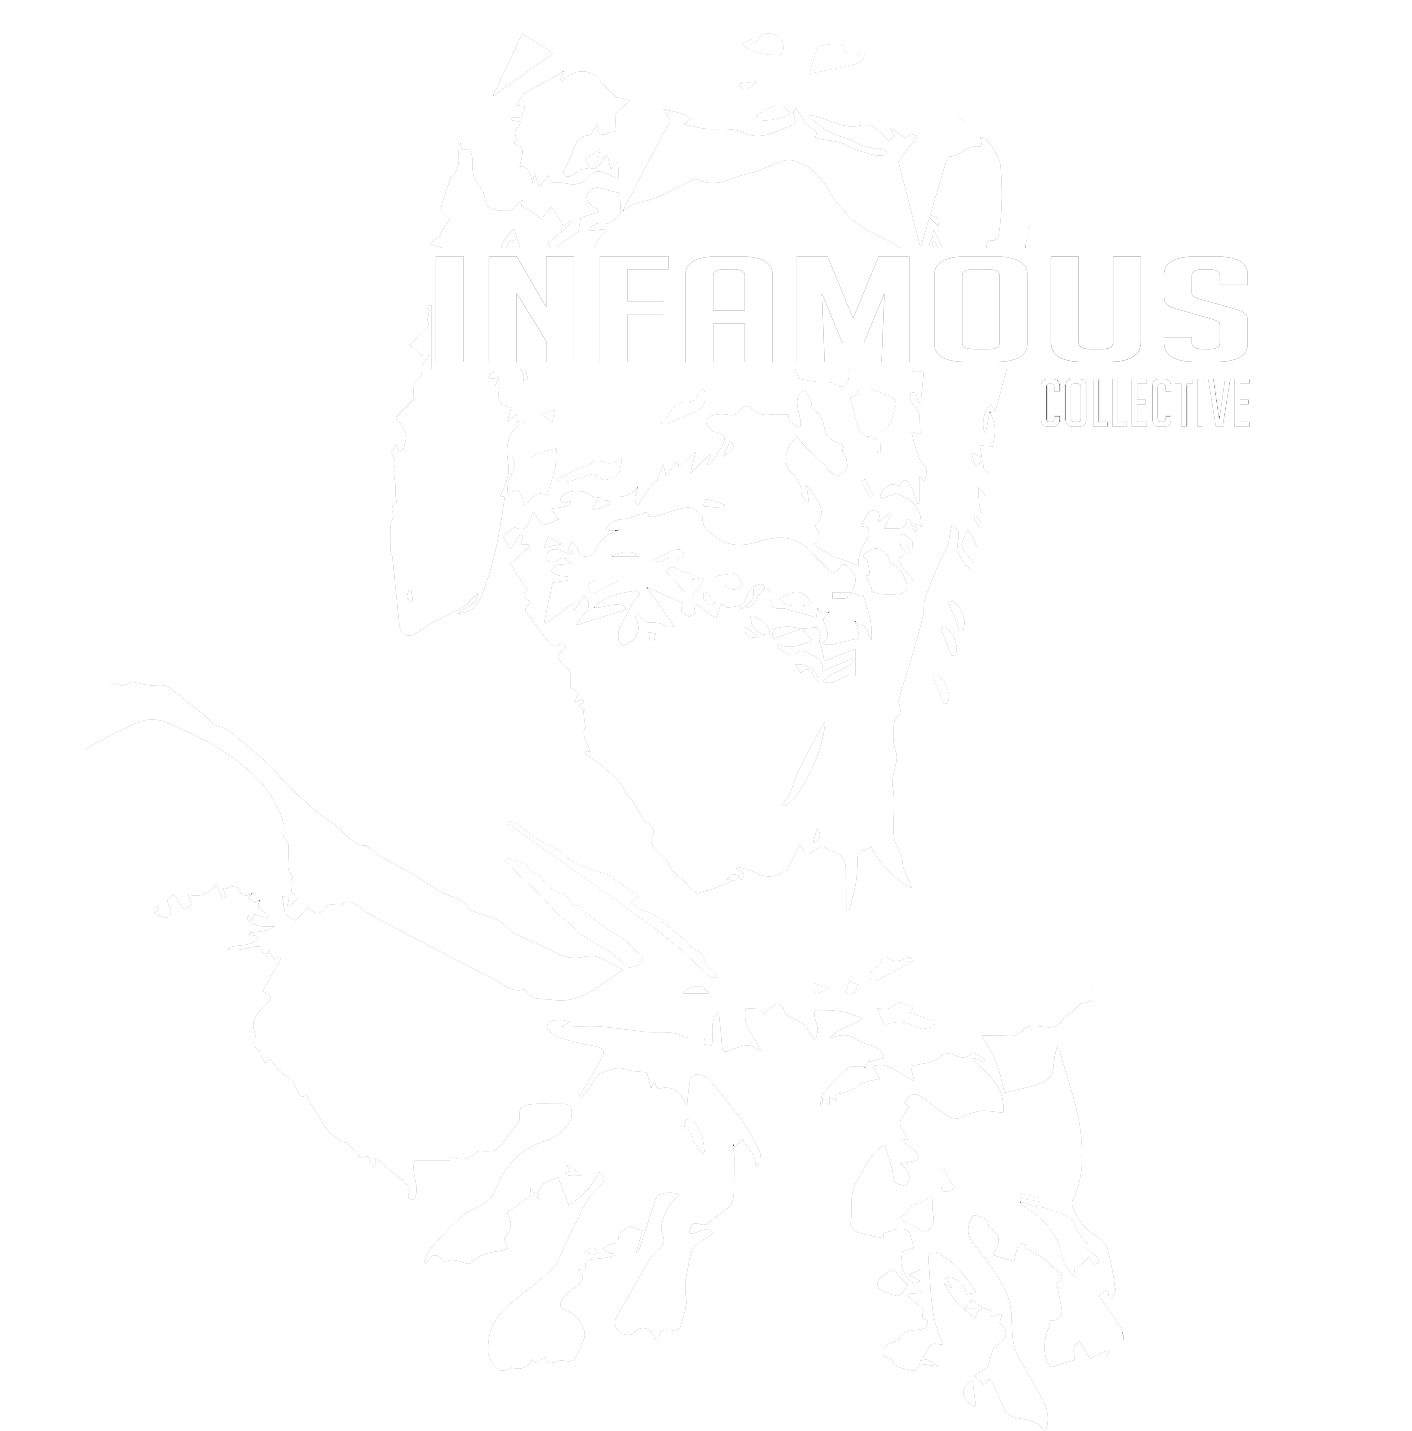 Infamous Collective